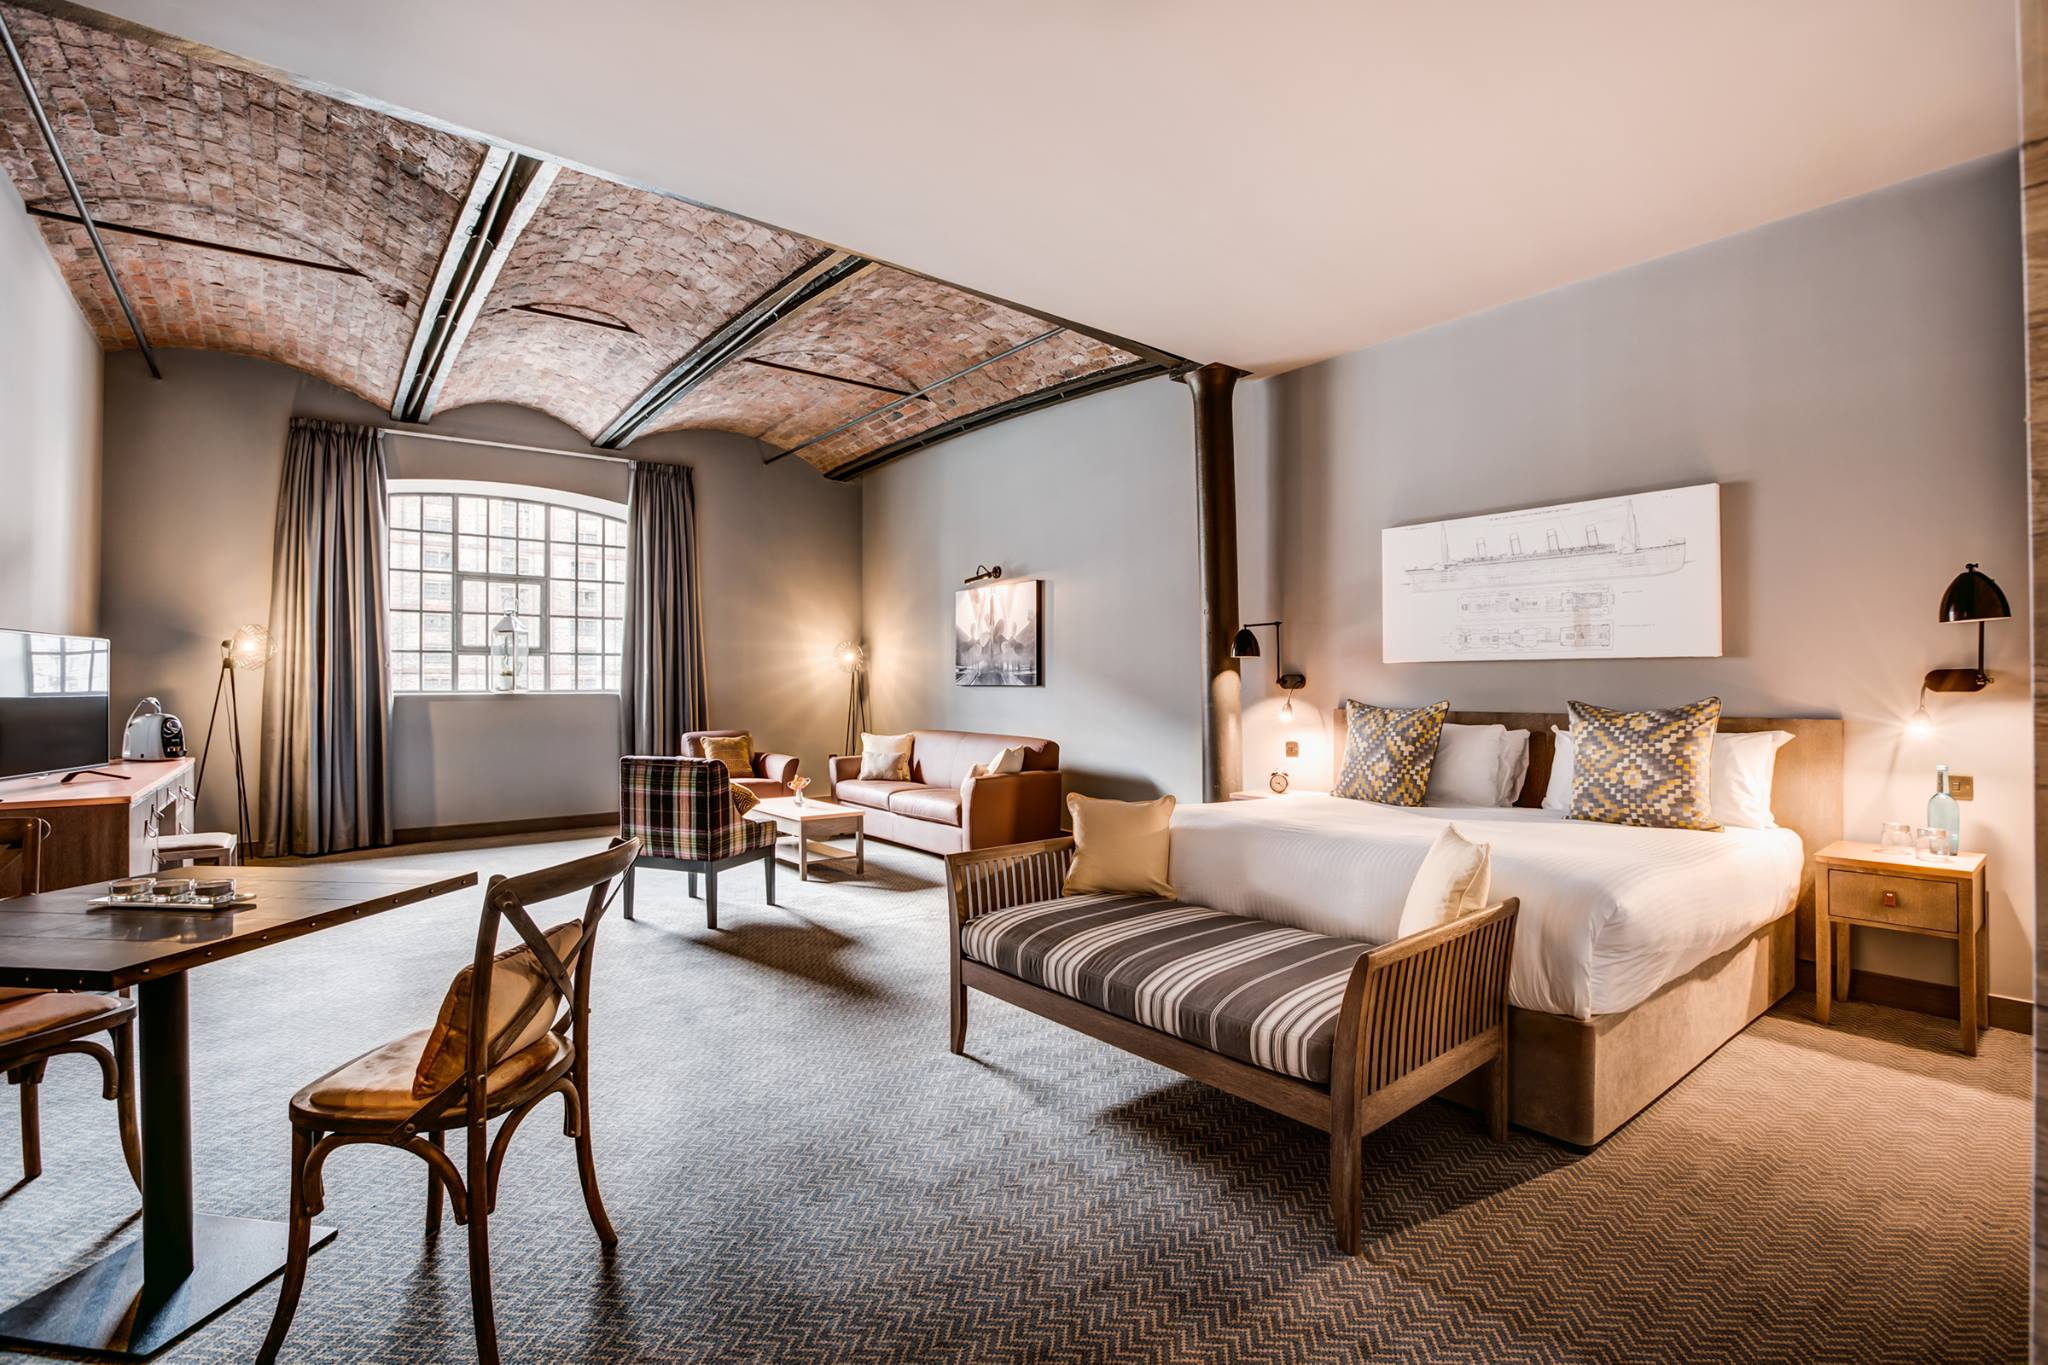 large-rustic-but-luxury-warehouse-hotel-bedroom-suite-at-titanic-hotel-weekend-in-liverpool-itinerary